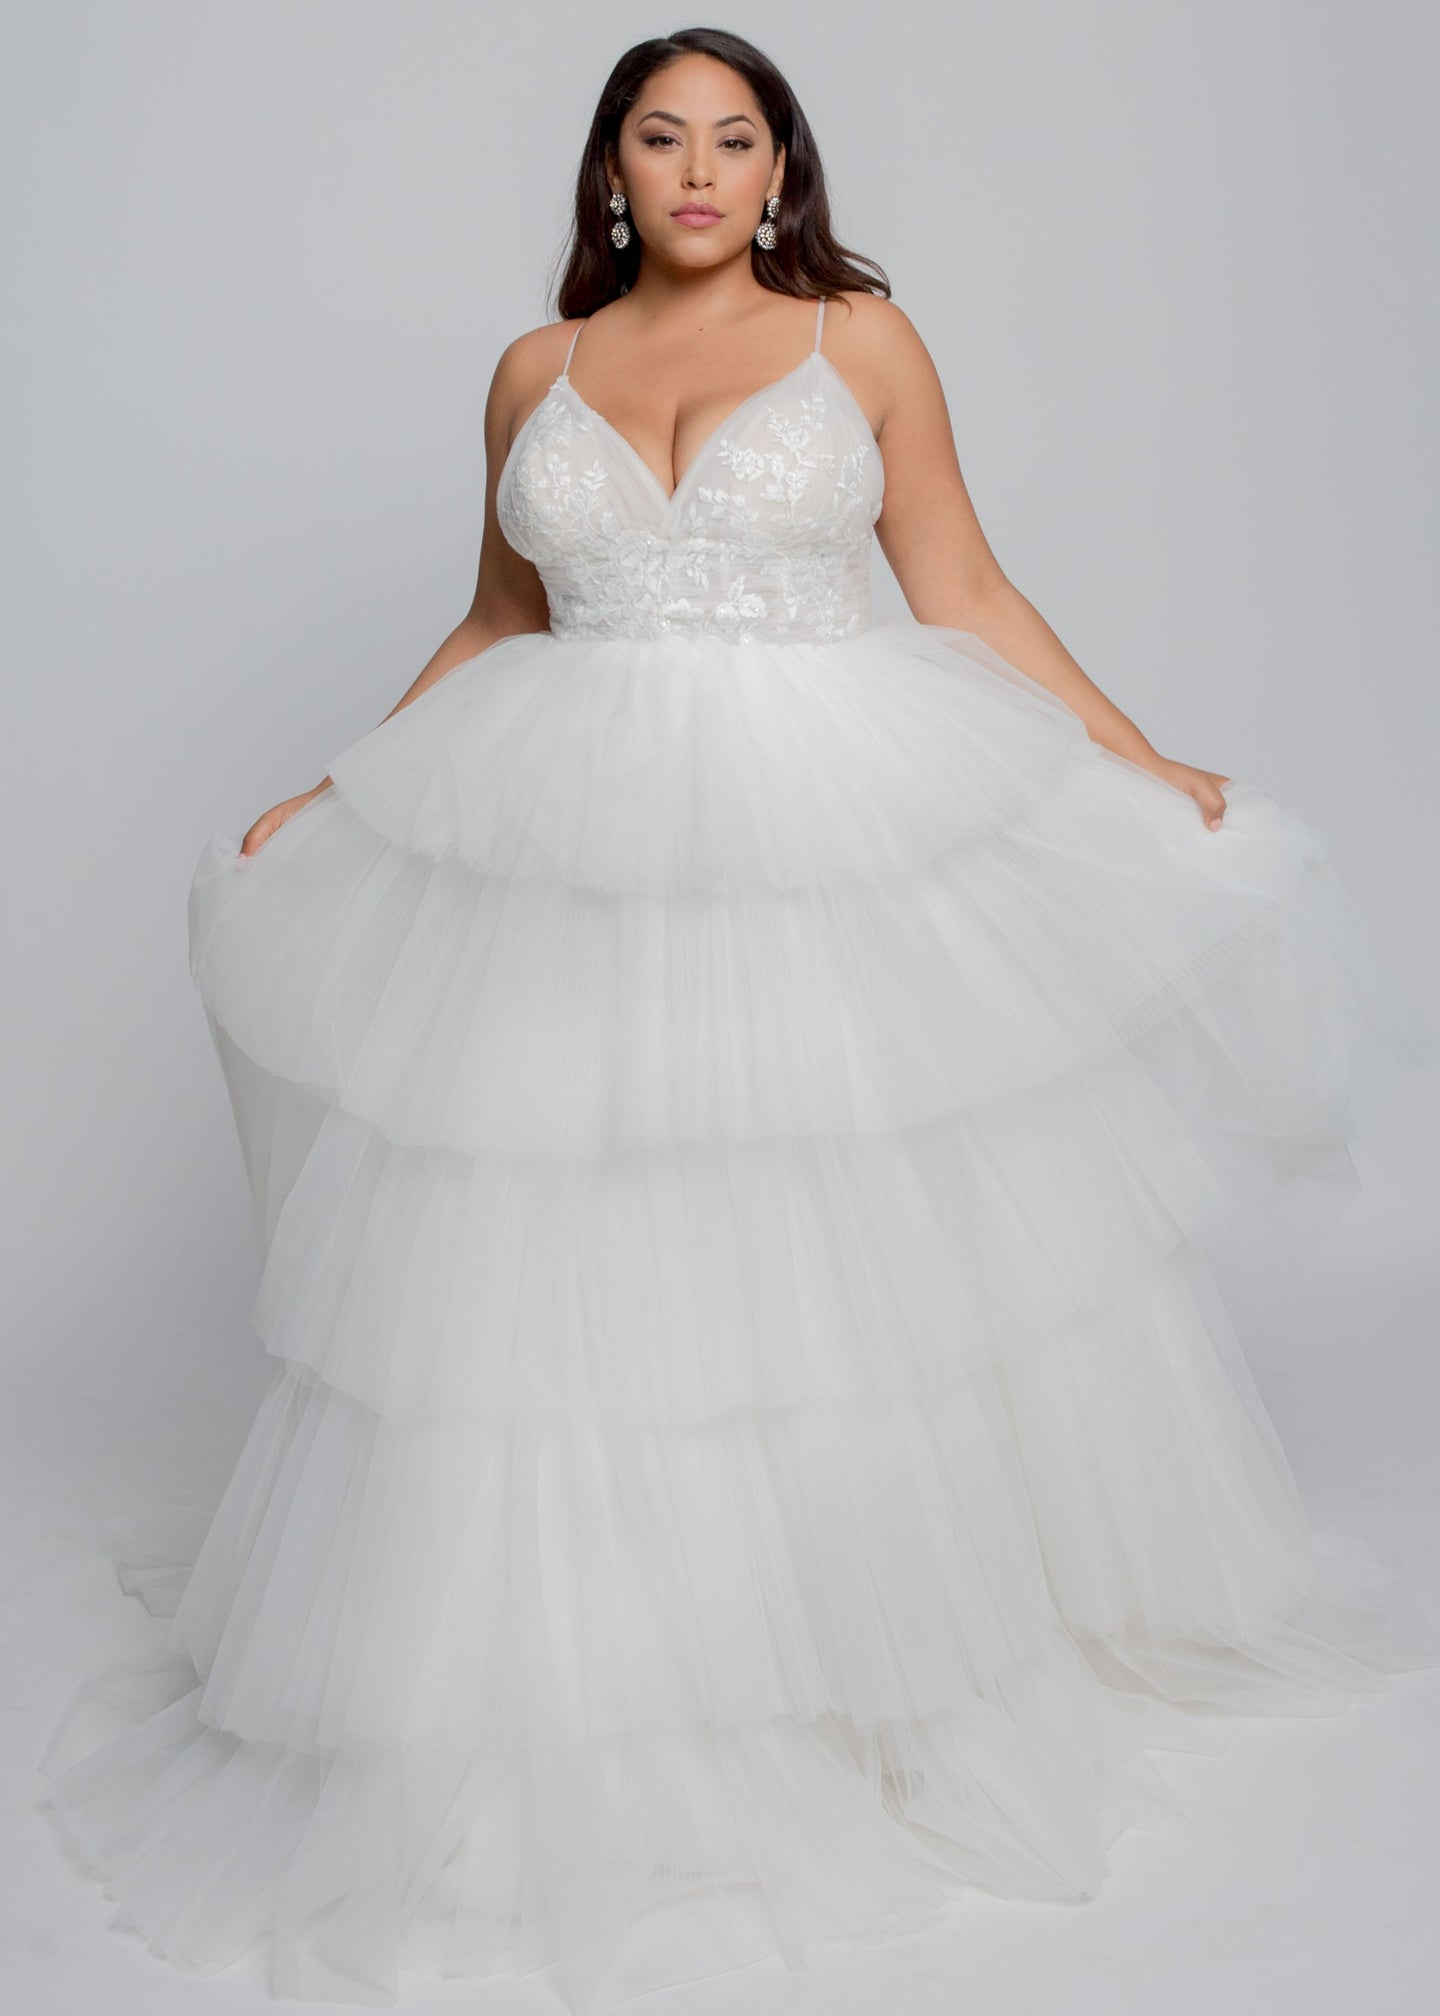 Gorgeous bridal gowns for all body shapes: plus size, curvy, or petite brides. Try on our wedding dresses at home. Size 0-30. Comfortable. Convenient. Fun. Lace or satin. Mermaid or A-line.  The romantic Hannah Gown features beautiful blush lace with tulle tiers and thin, sultry tulle straps. The V neckline combines with the blush lining is sure to flatter. Pleating at the waist adds definition and juxtaposes the ethereal tulle skirt.